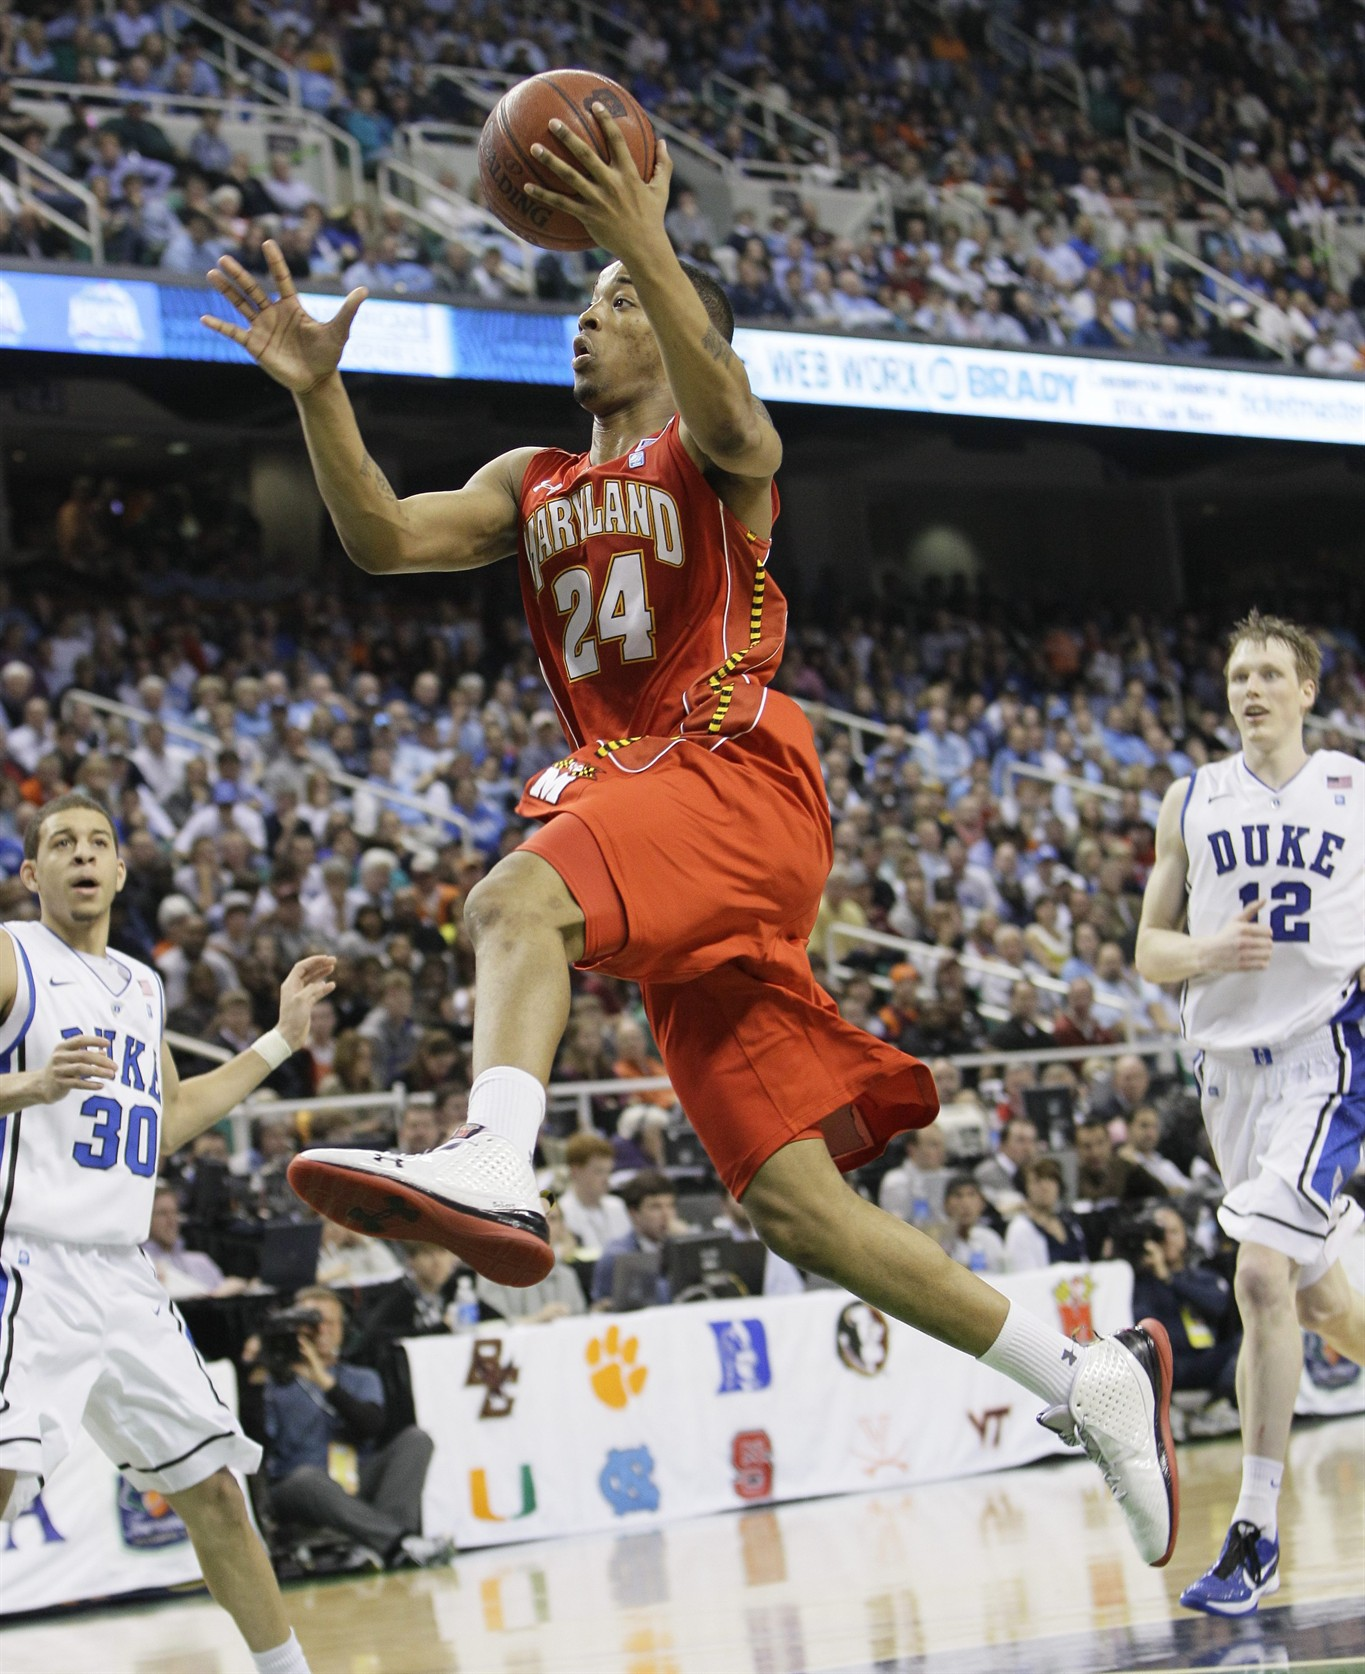 ex maryland basketball player killed in texas van accident 680 news